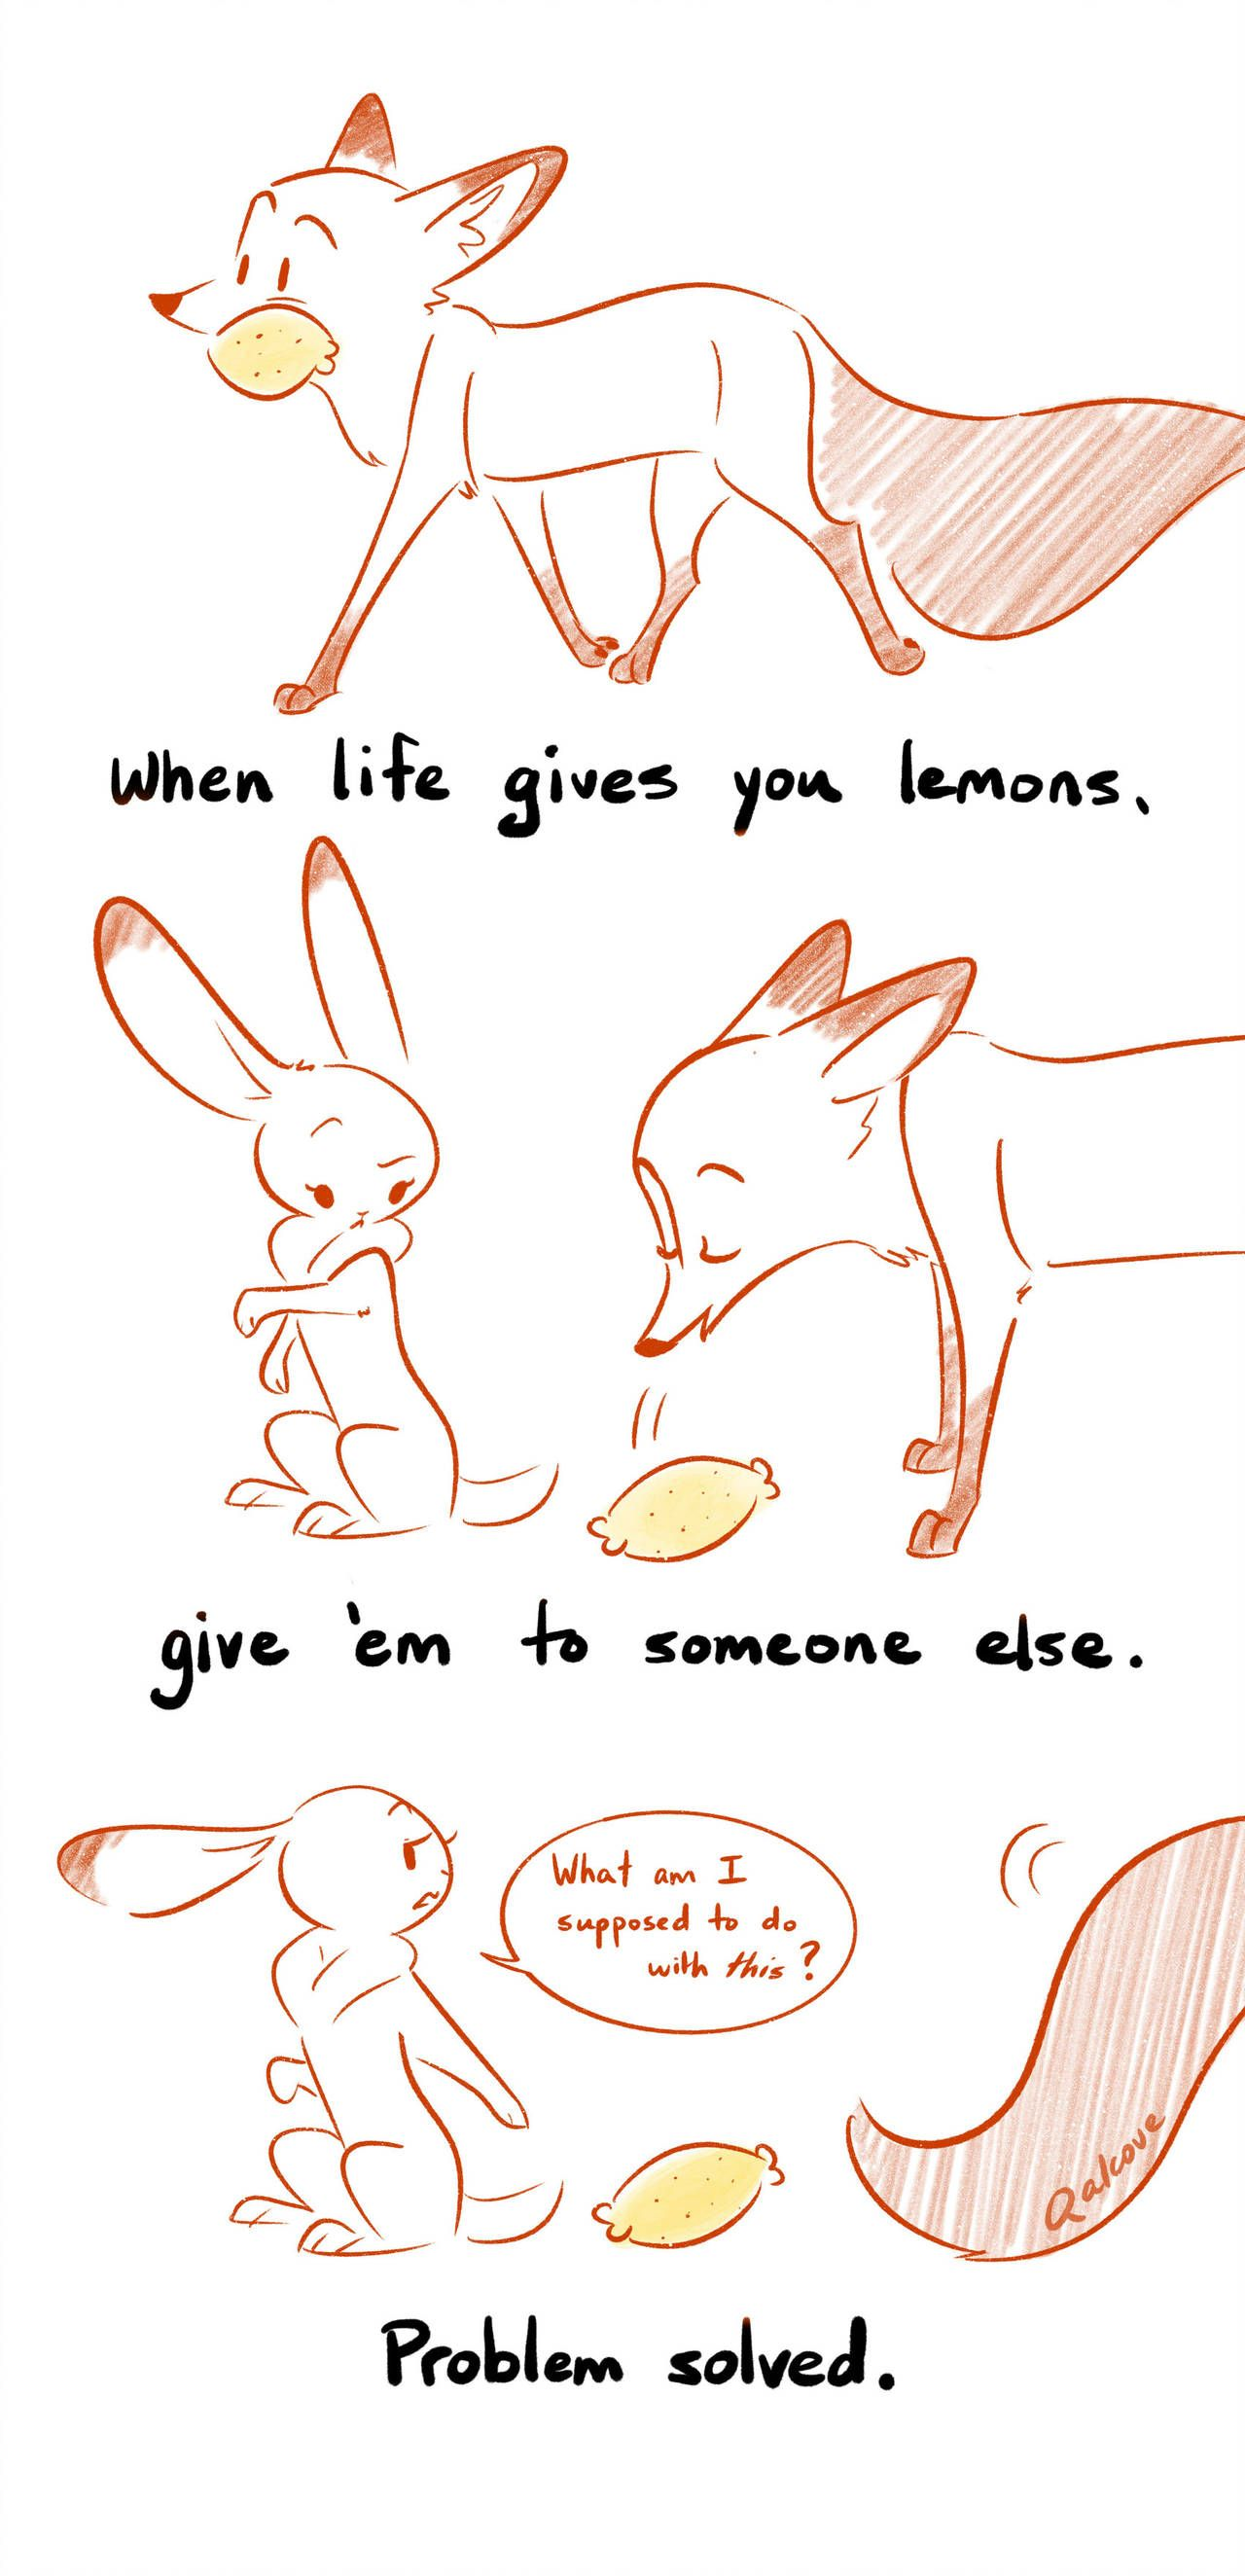 Little Wisdoms - Lemons by Qalcove on DeviantArt | Fox